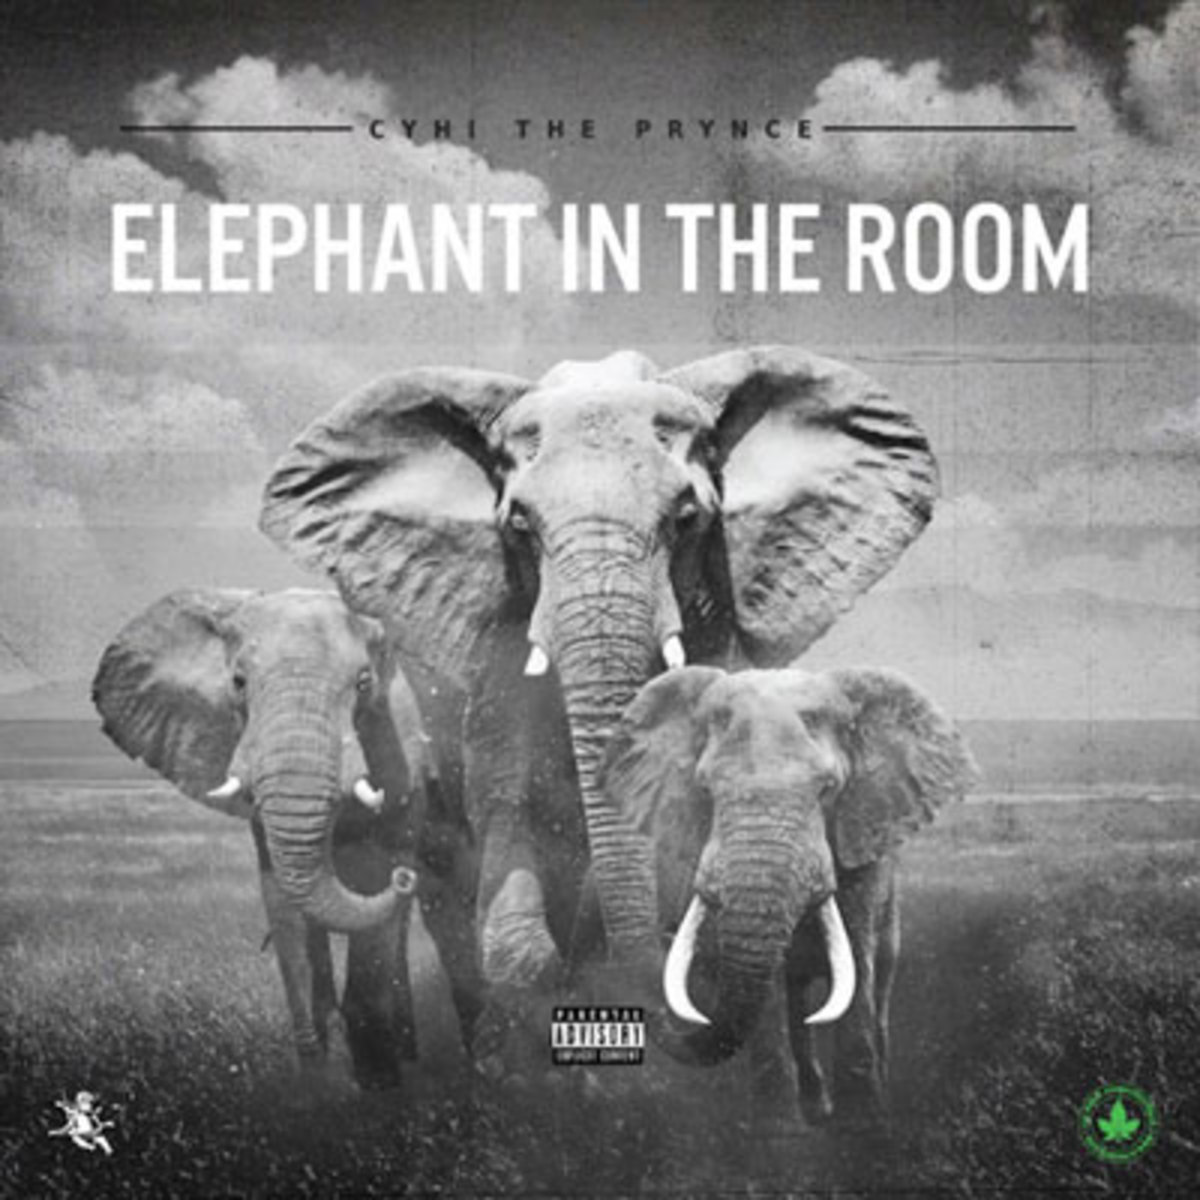 cyhi-the-prynce-elephant-in-the-room.jpg